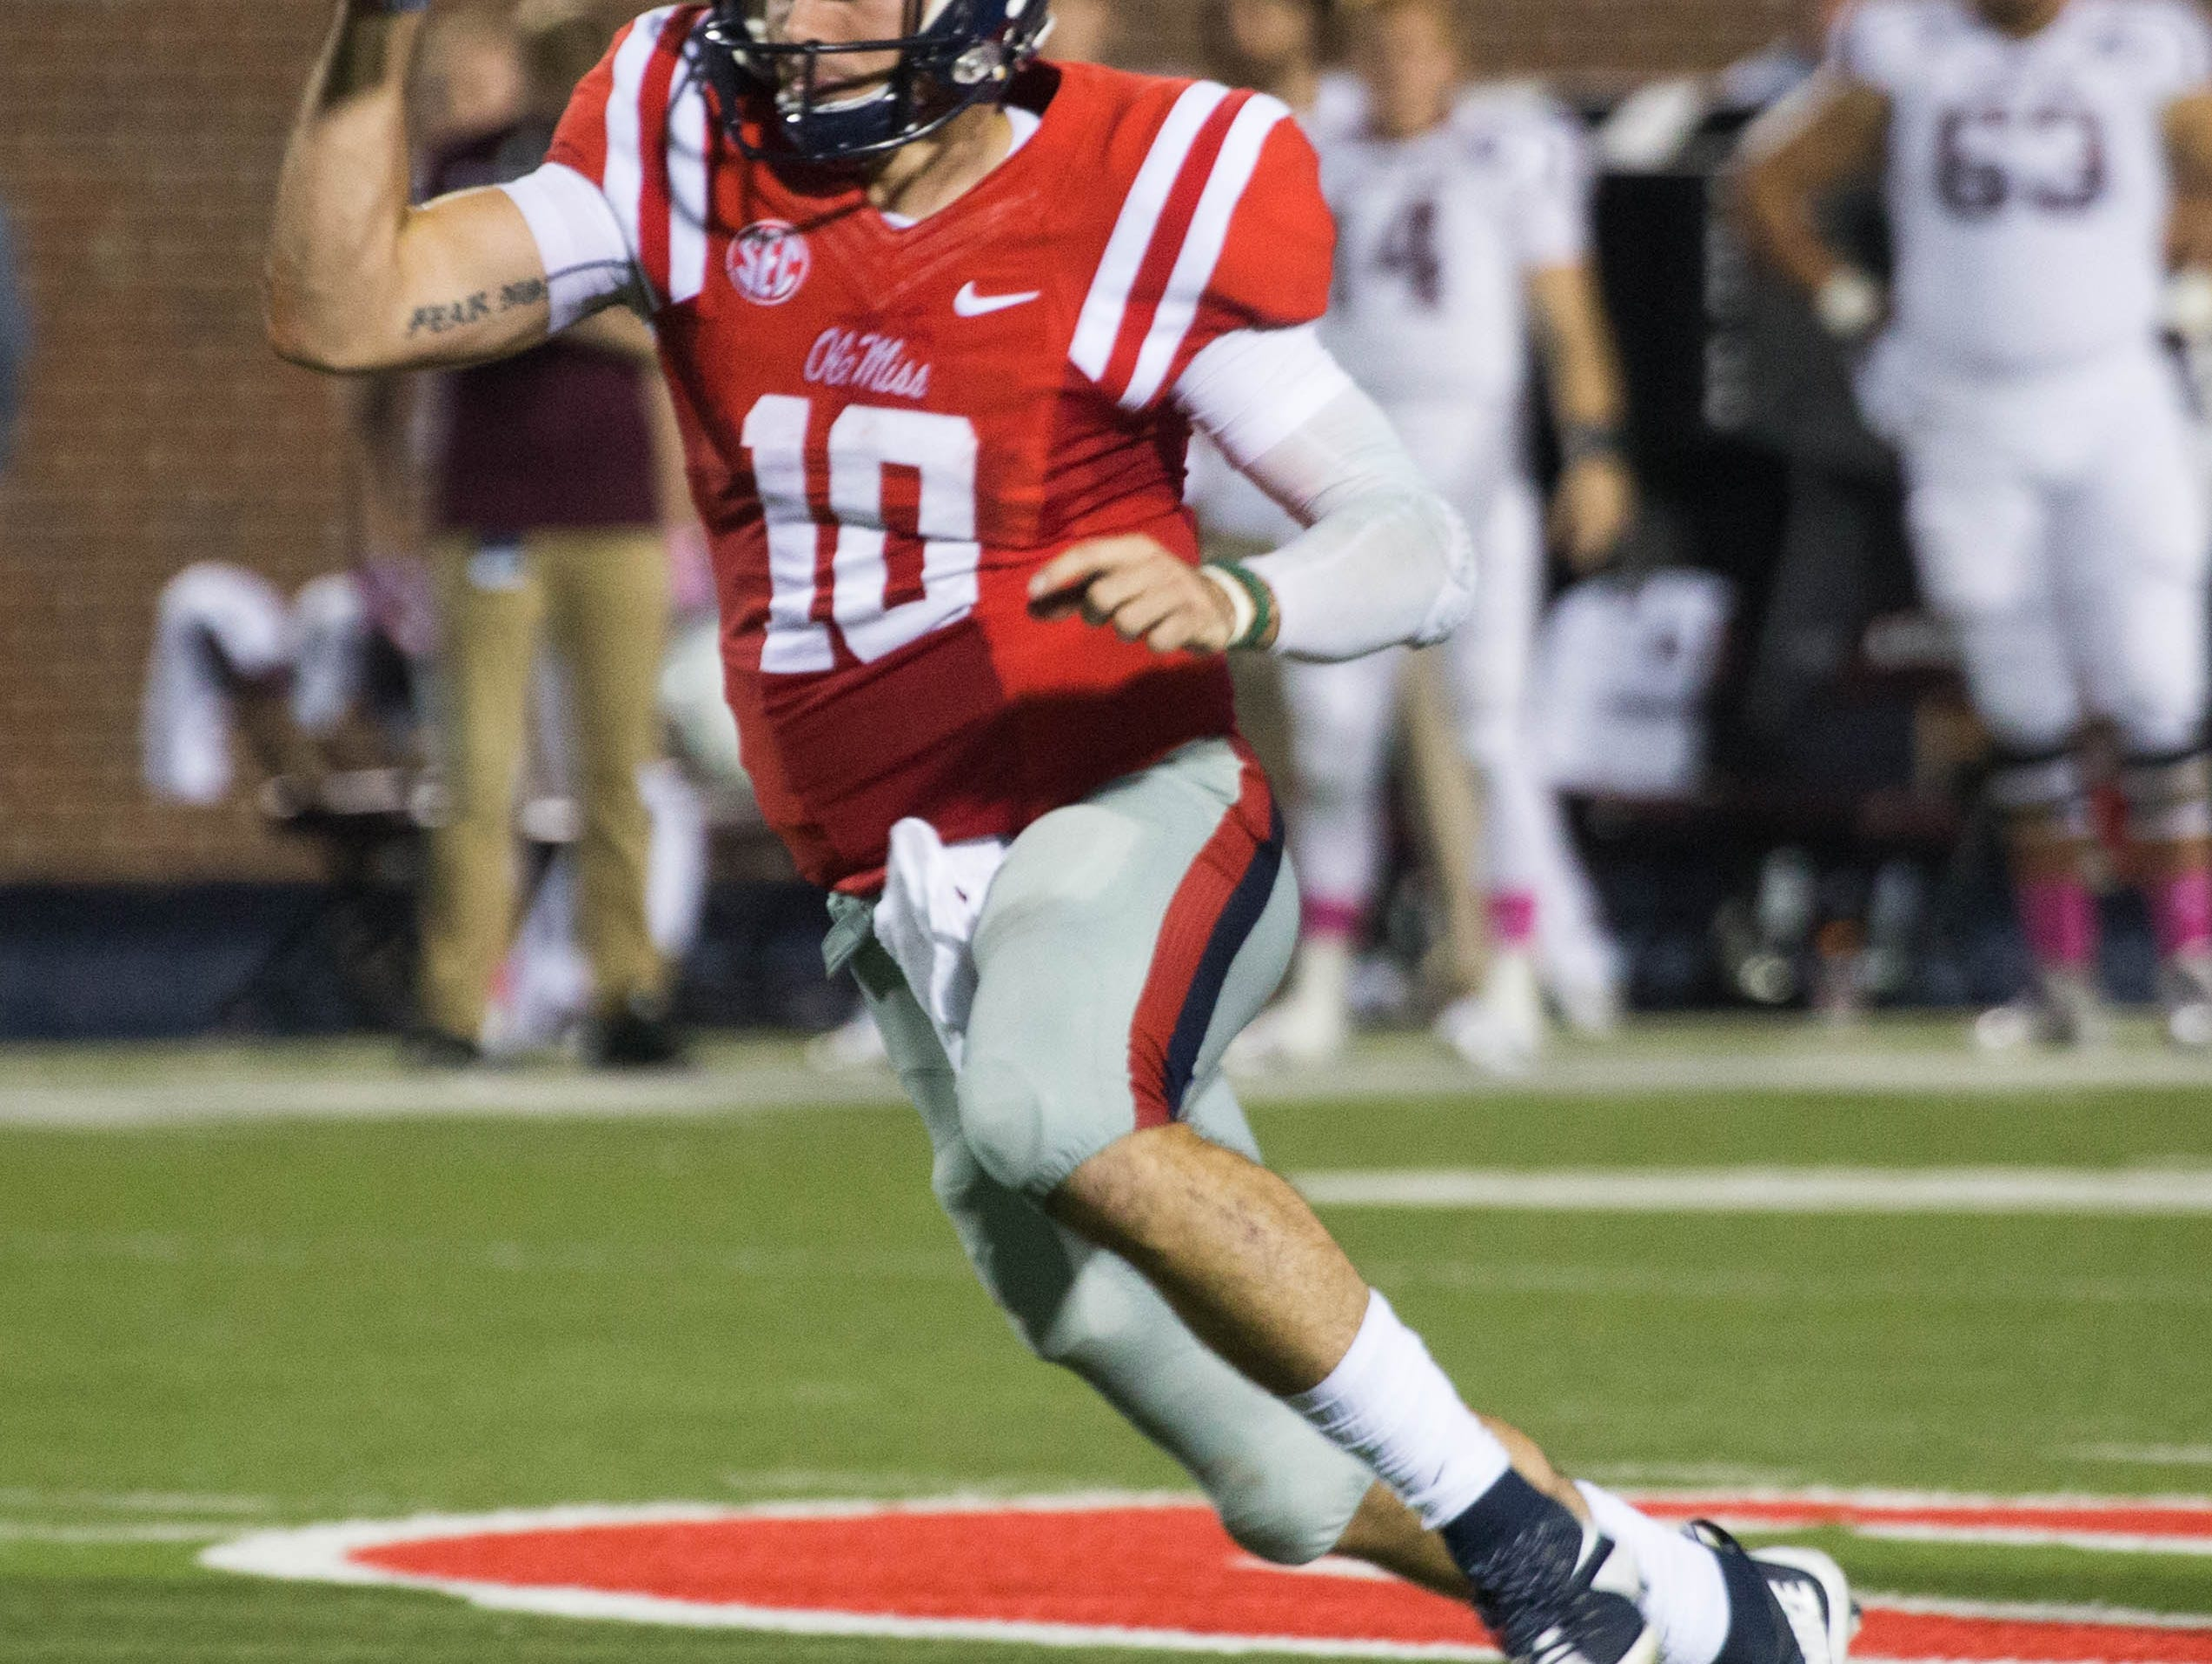 Chad Kelly was 14-20 with one interception in the first half Saturday night against Texas A&M.